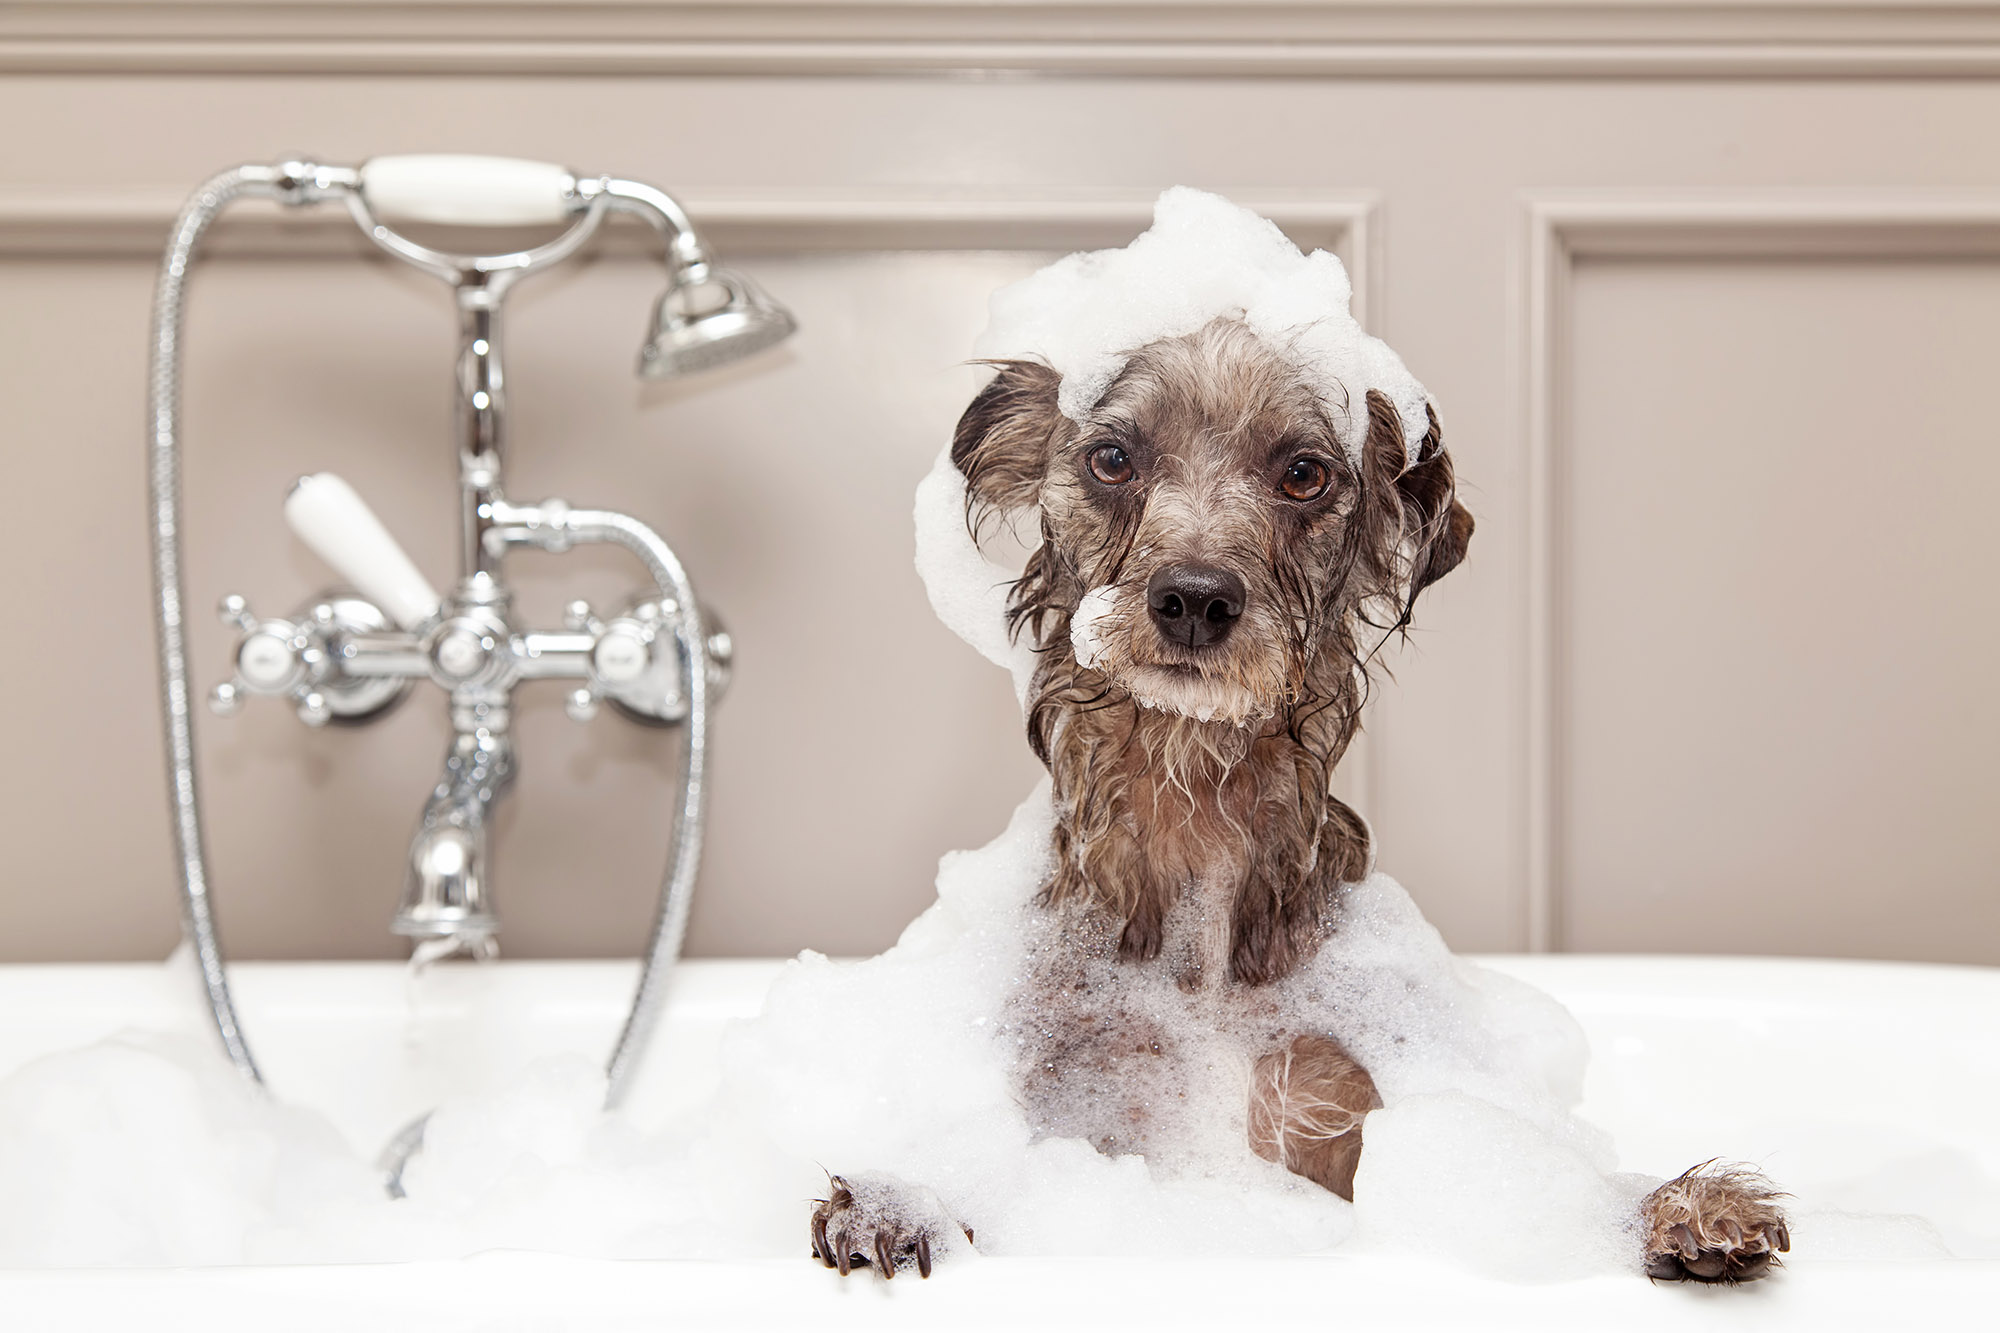 Dog Grooming in London | Pets in the City | Dog Care Services London